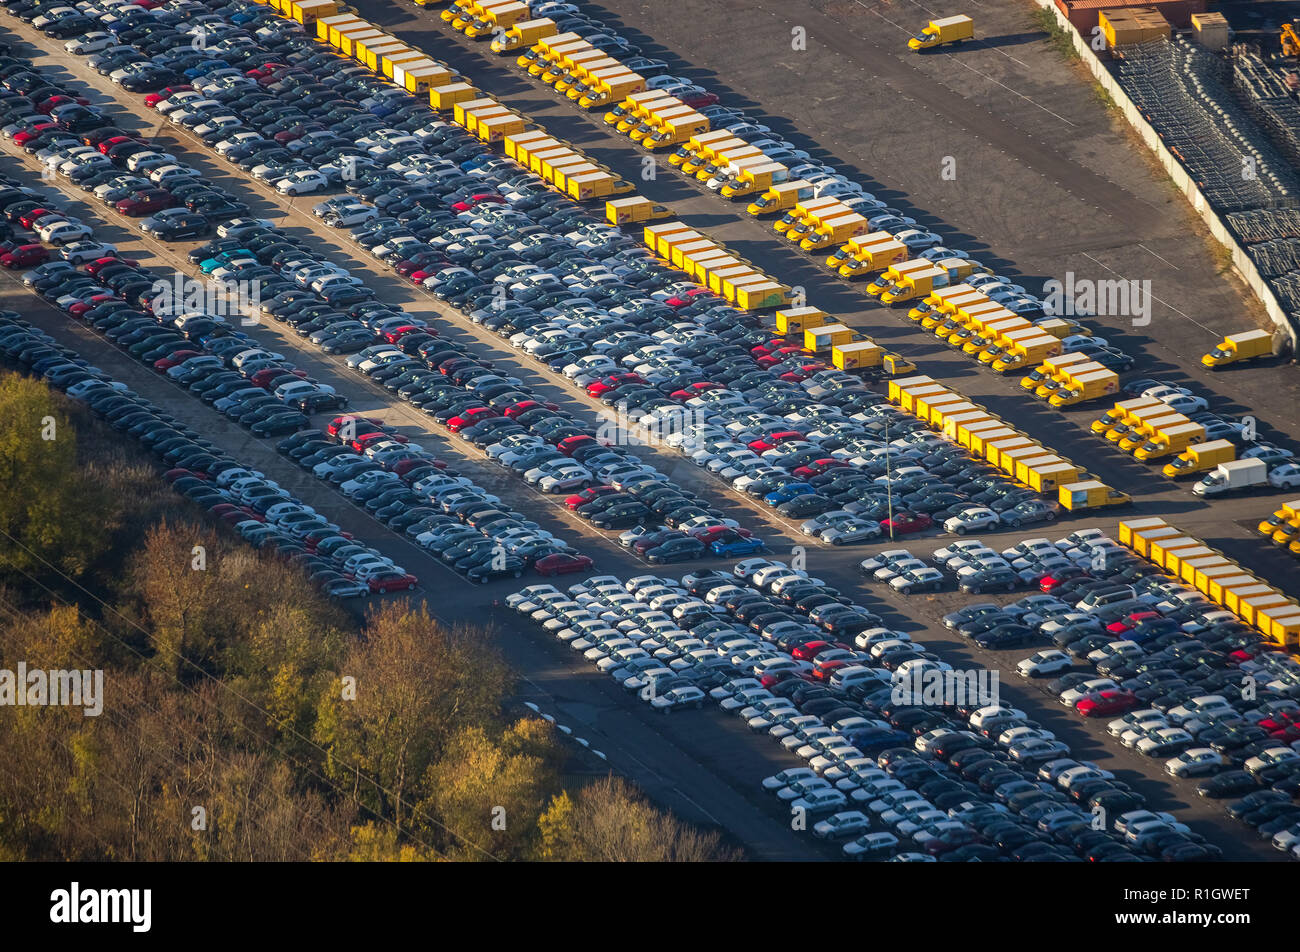 Aerial View, new electric cars the Federal Post Office, E-vans, electric vans, postal delivery, Causeway, new car parking, new cars DHL, Externberg, D - Stock Image